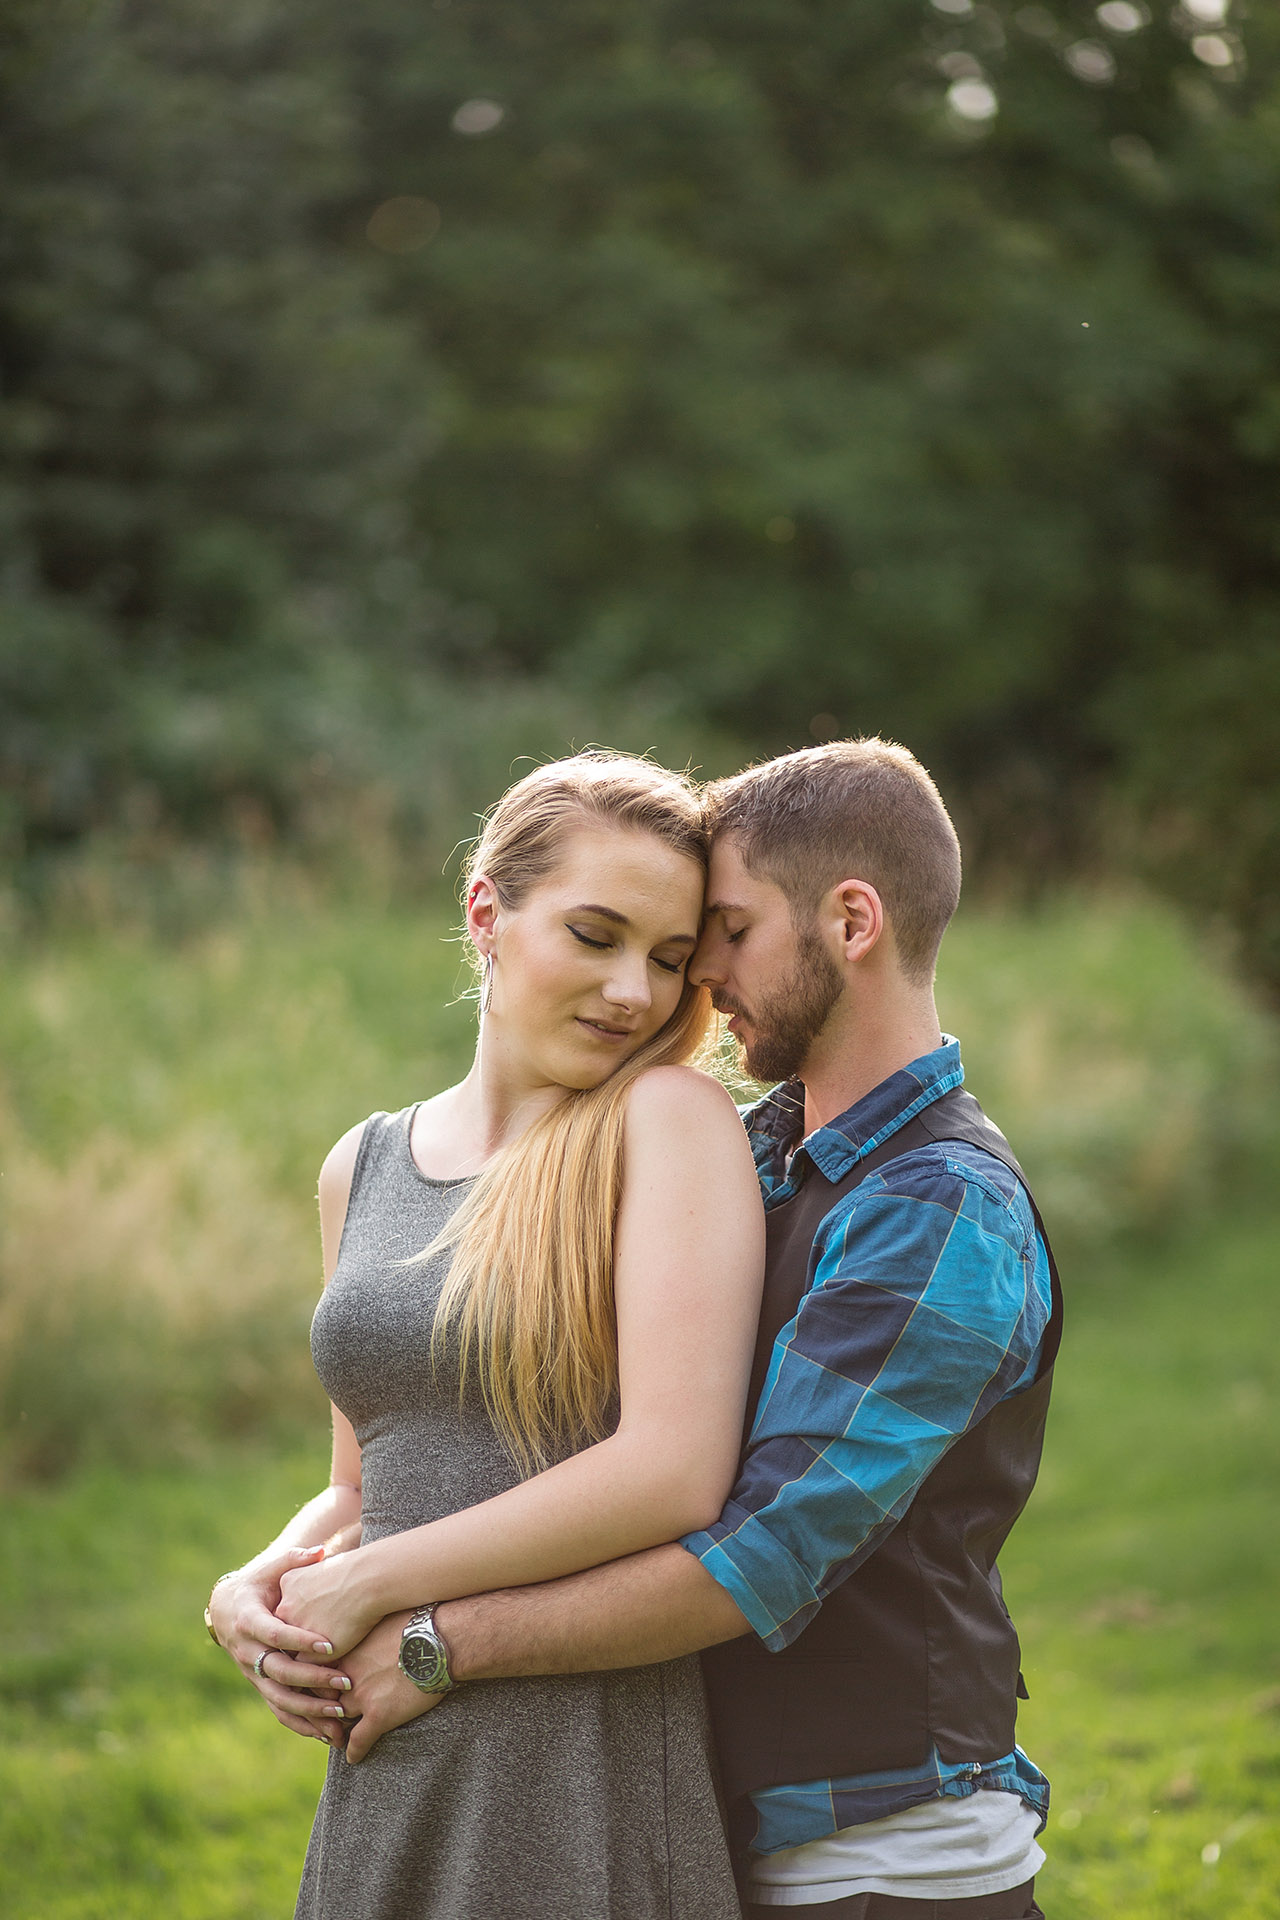 Bellevue Redmond pregnancy announcement photography by Entwined